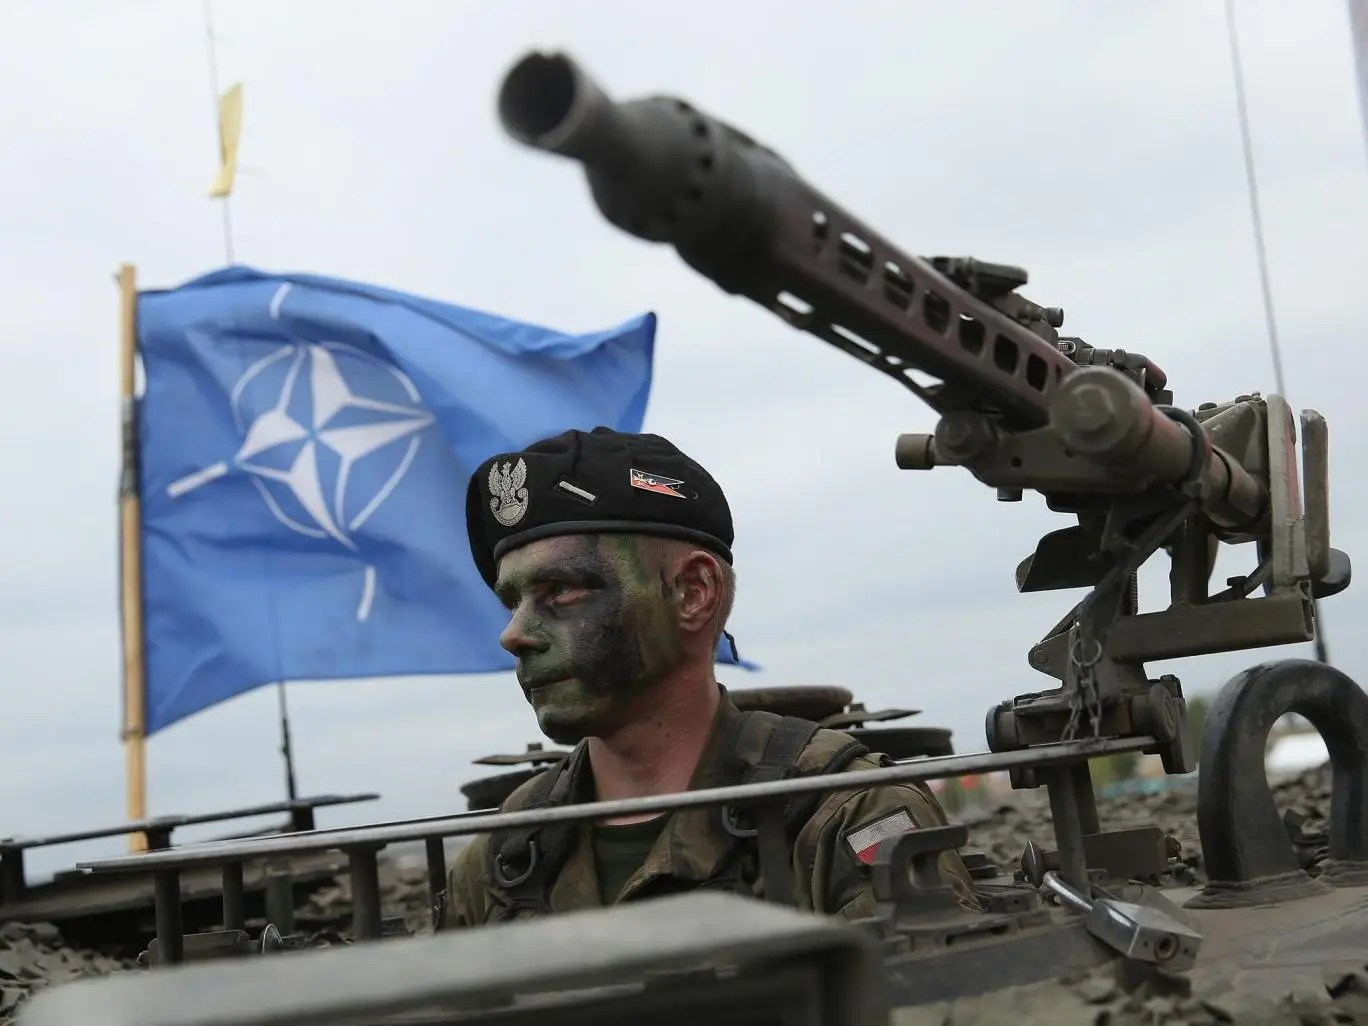 https://i0.wp.com/static.independent.co.uk/s3fs-public/styles/story_large/public/thumbnails/image/2016/07/26/09/poland-nato.jpg